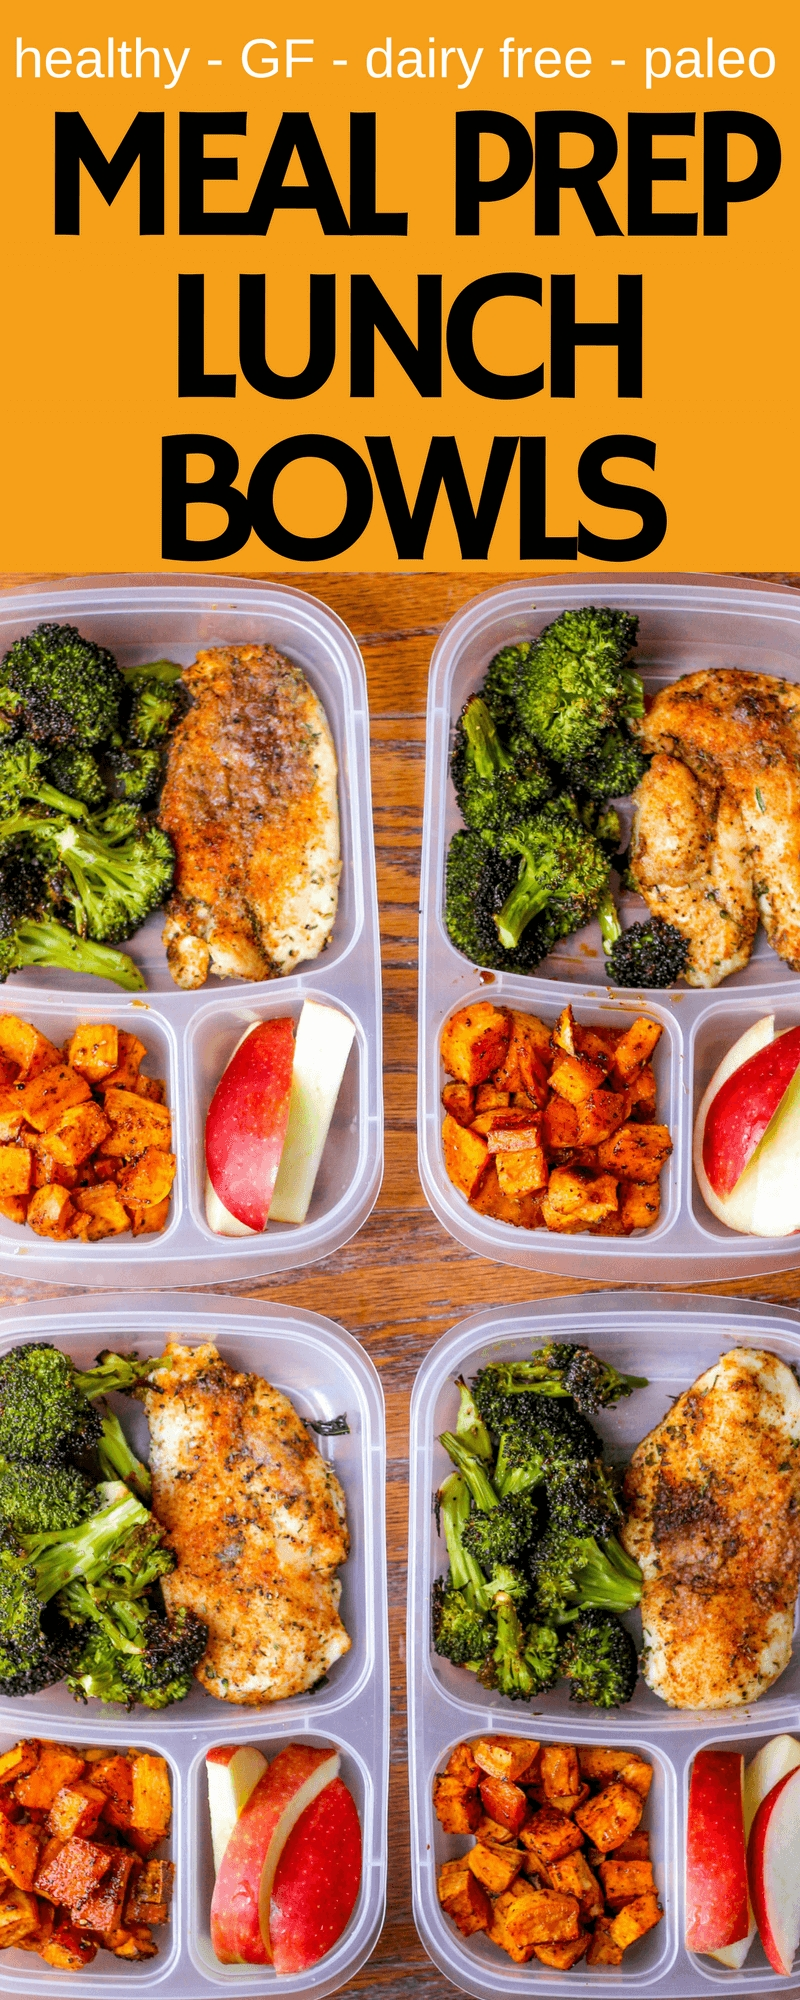 10 Lovable Paleo Lunch Ideas For Work meal prep lunch bowls with spicy chicken roasted lemon broccoli 1